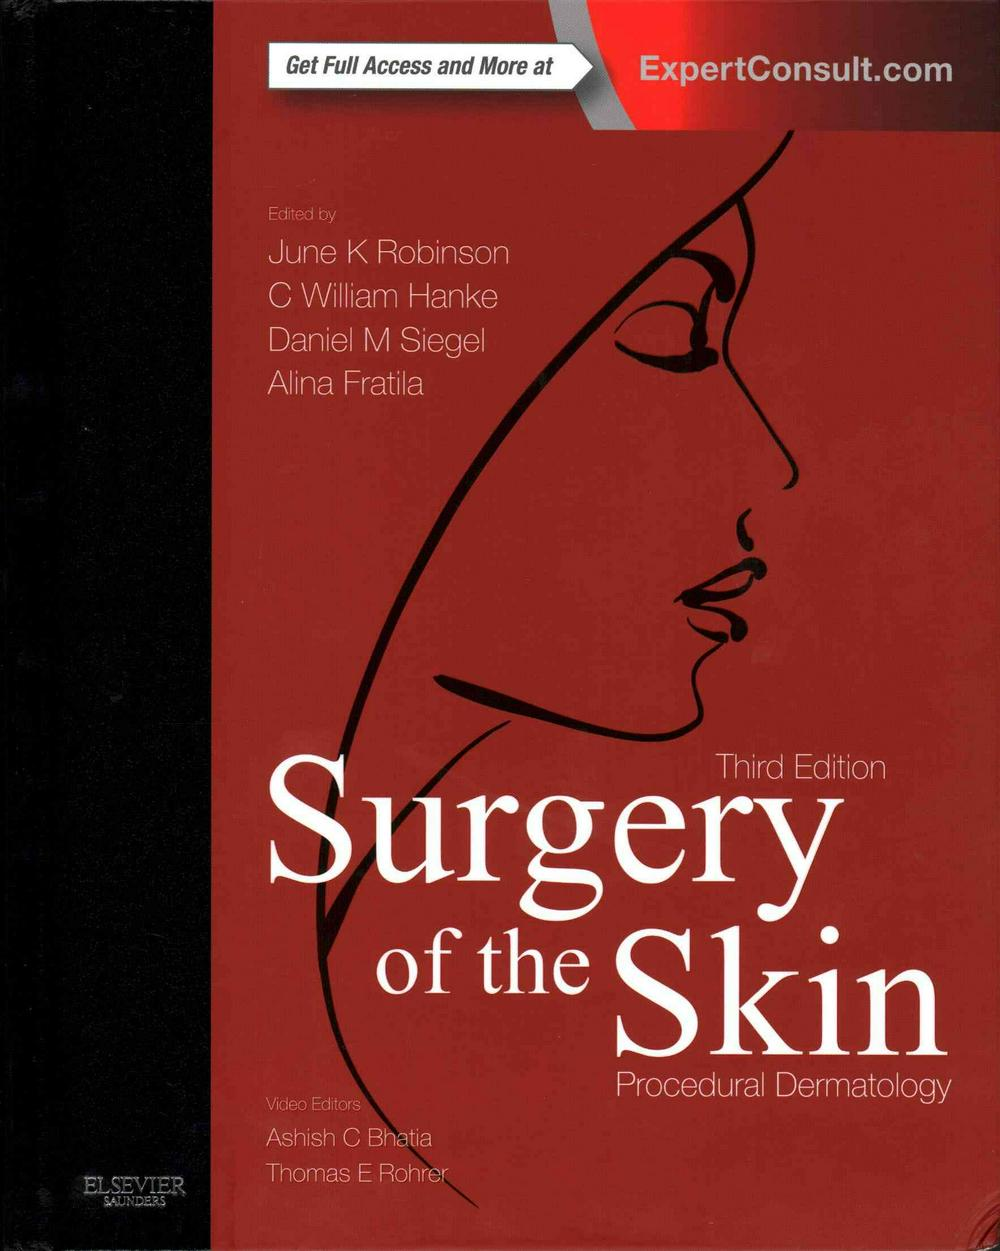 Surgery of the Skin: Procedural Dermatology (Expert Consult - Online and Print), 3e